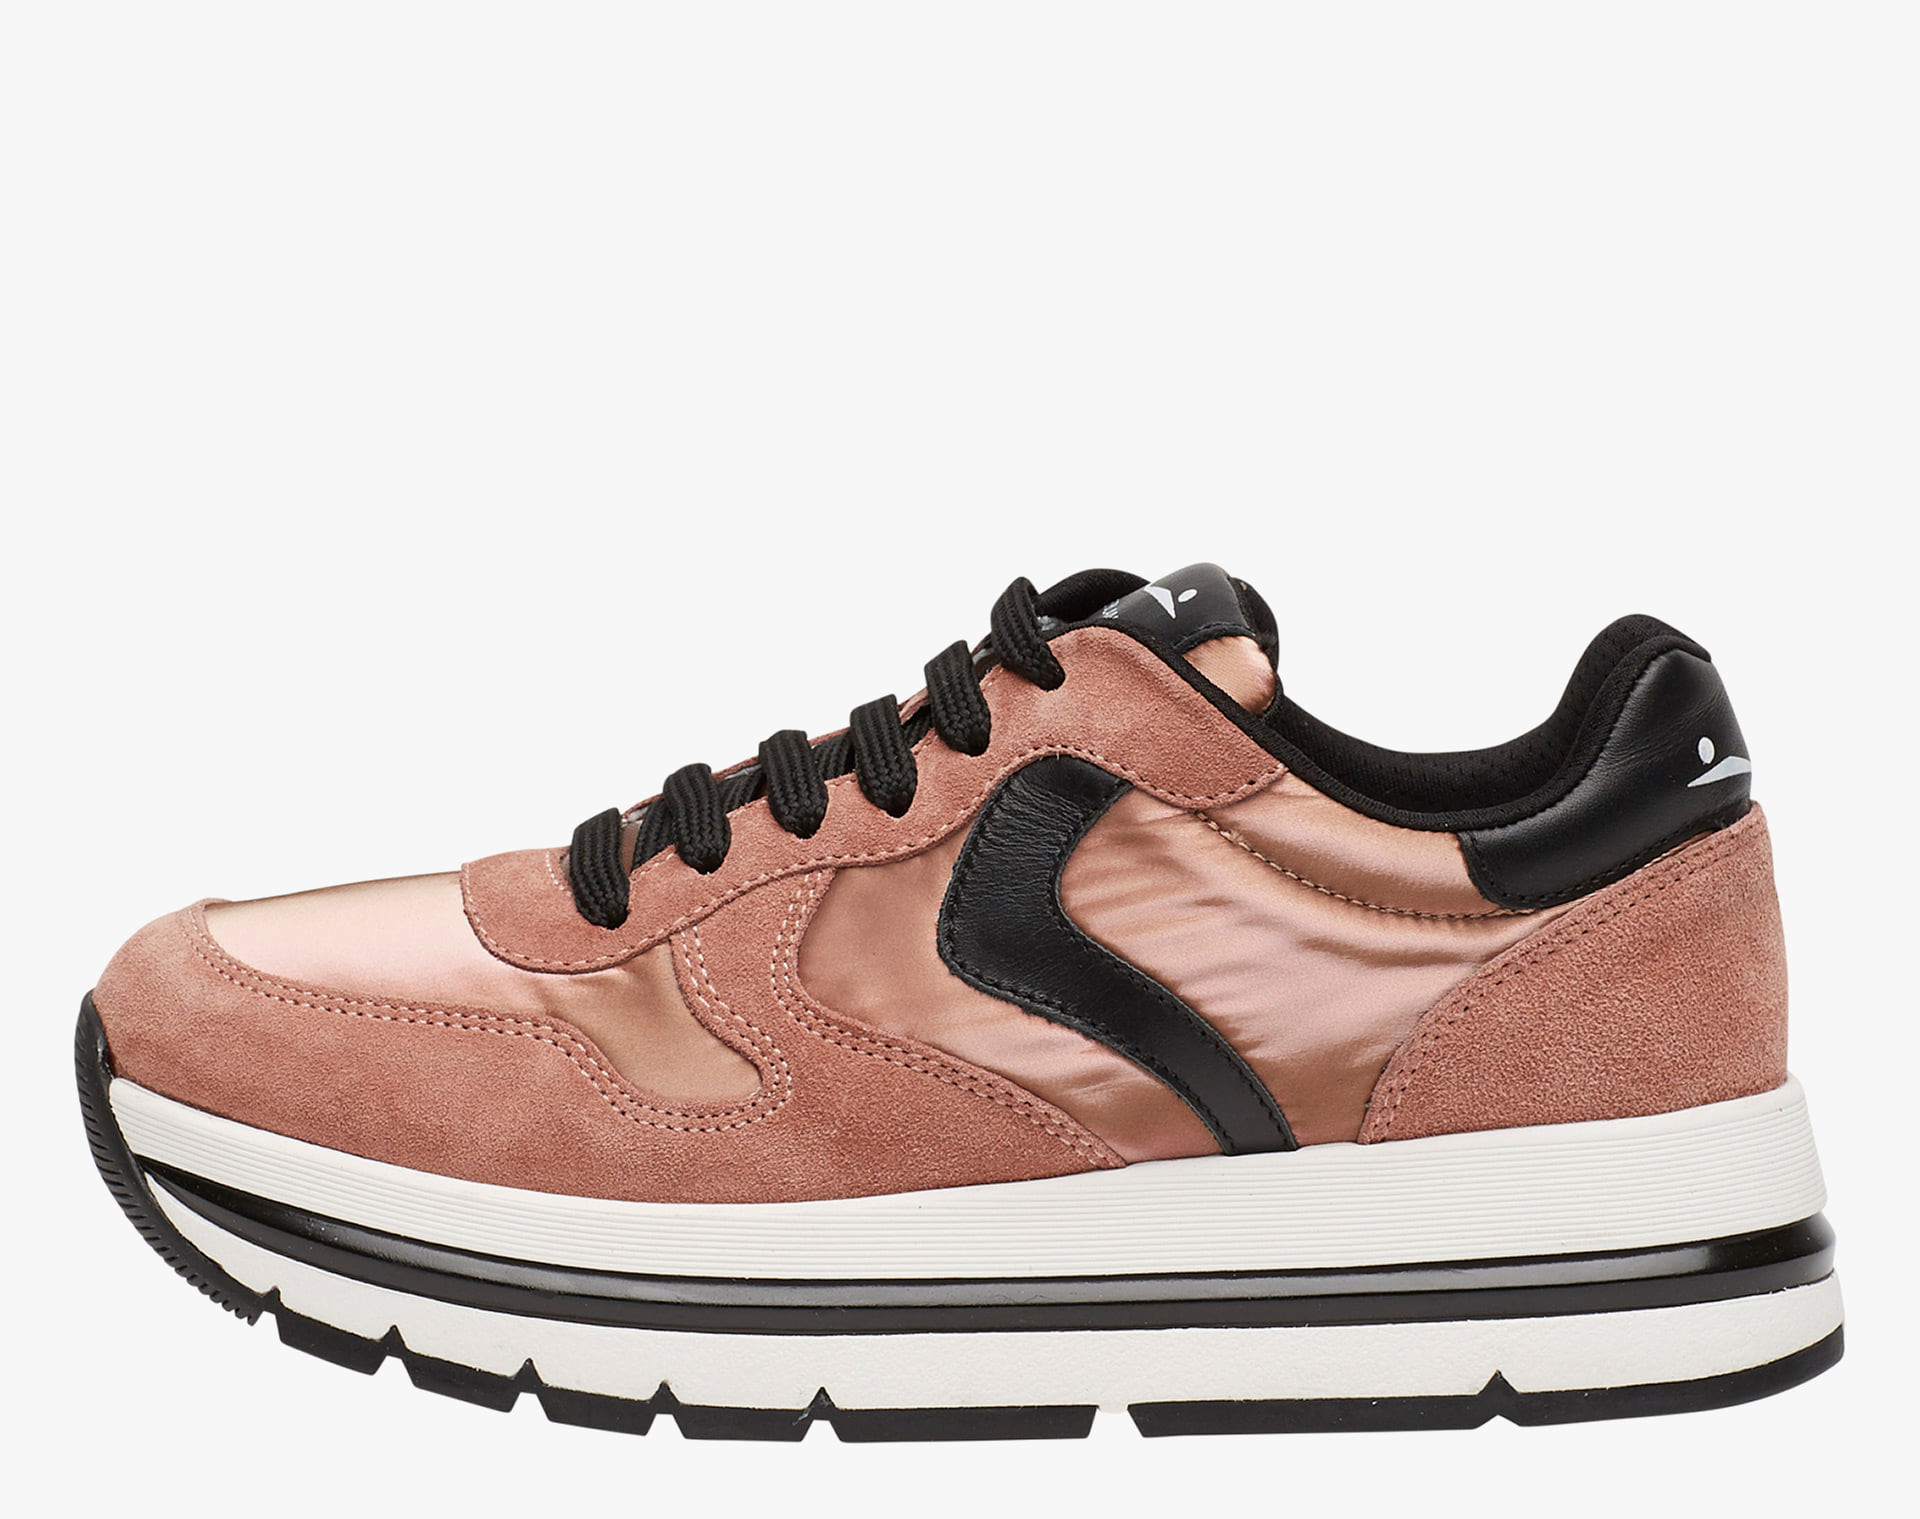 MARAN - Leather sneakers - Pink-Copper